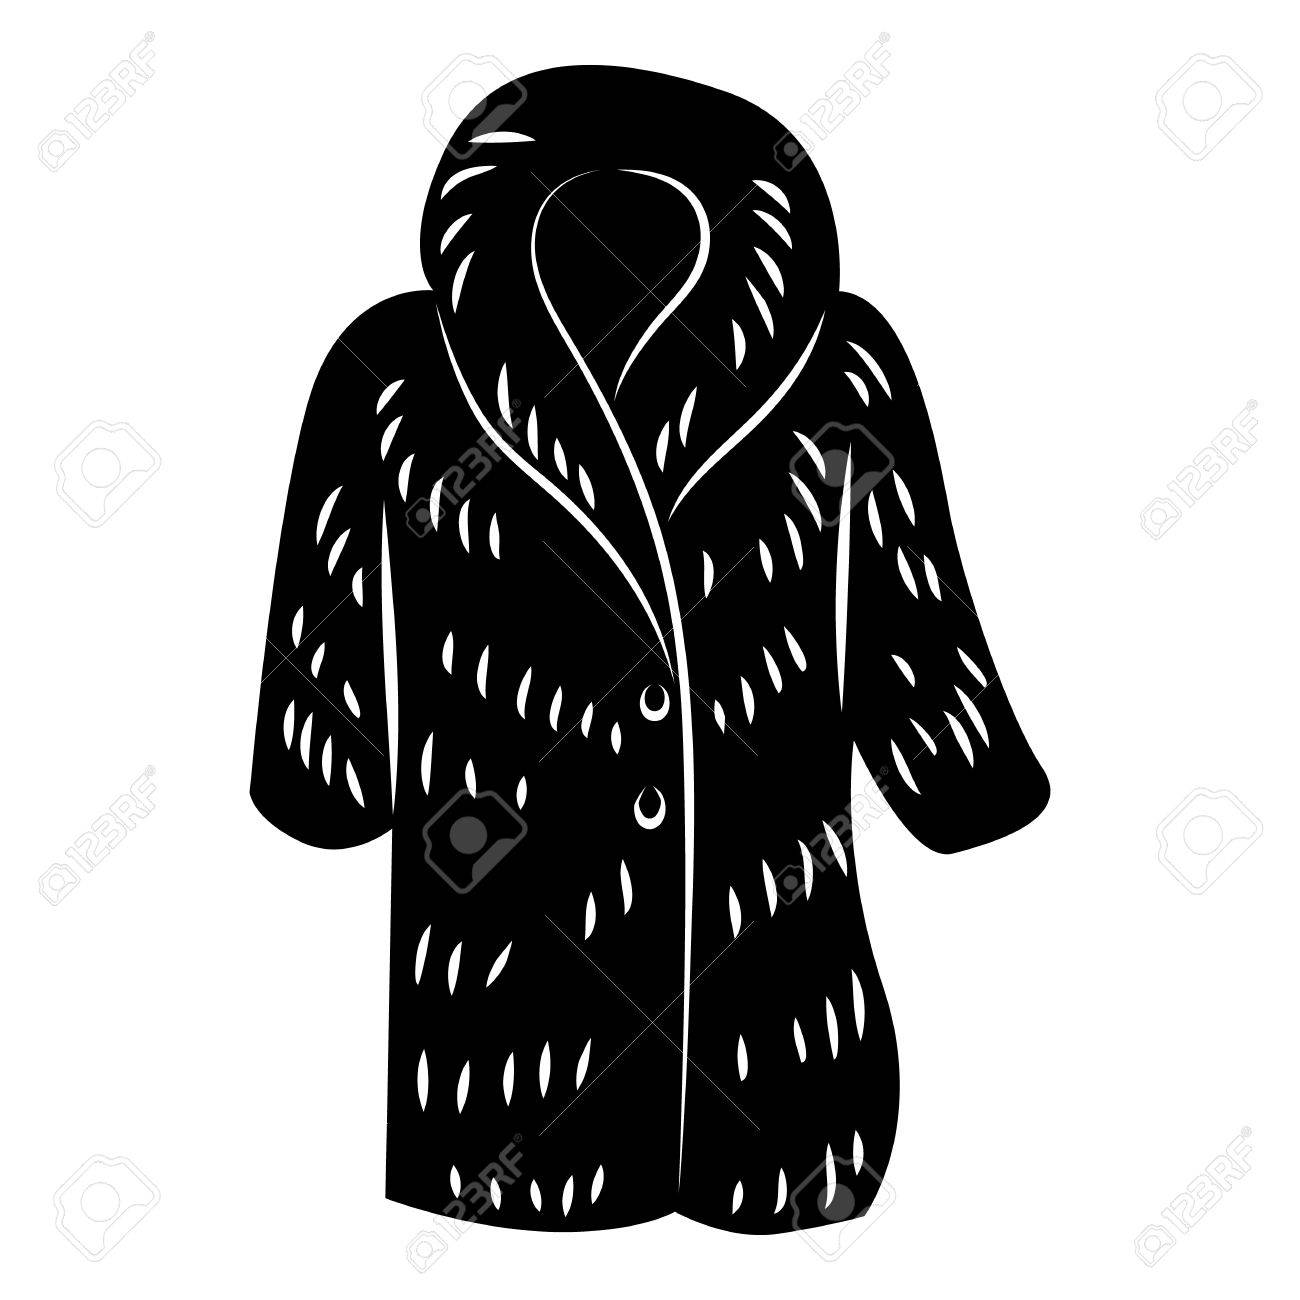 bff0a697c76e Fur coat icon in simple style on a white background vector illustration  Stock Vector - 62978698